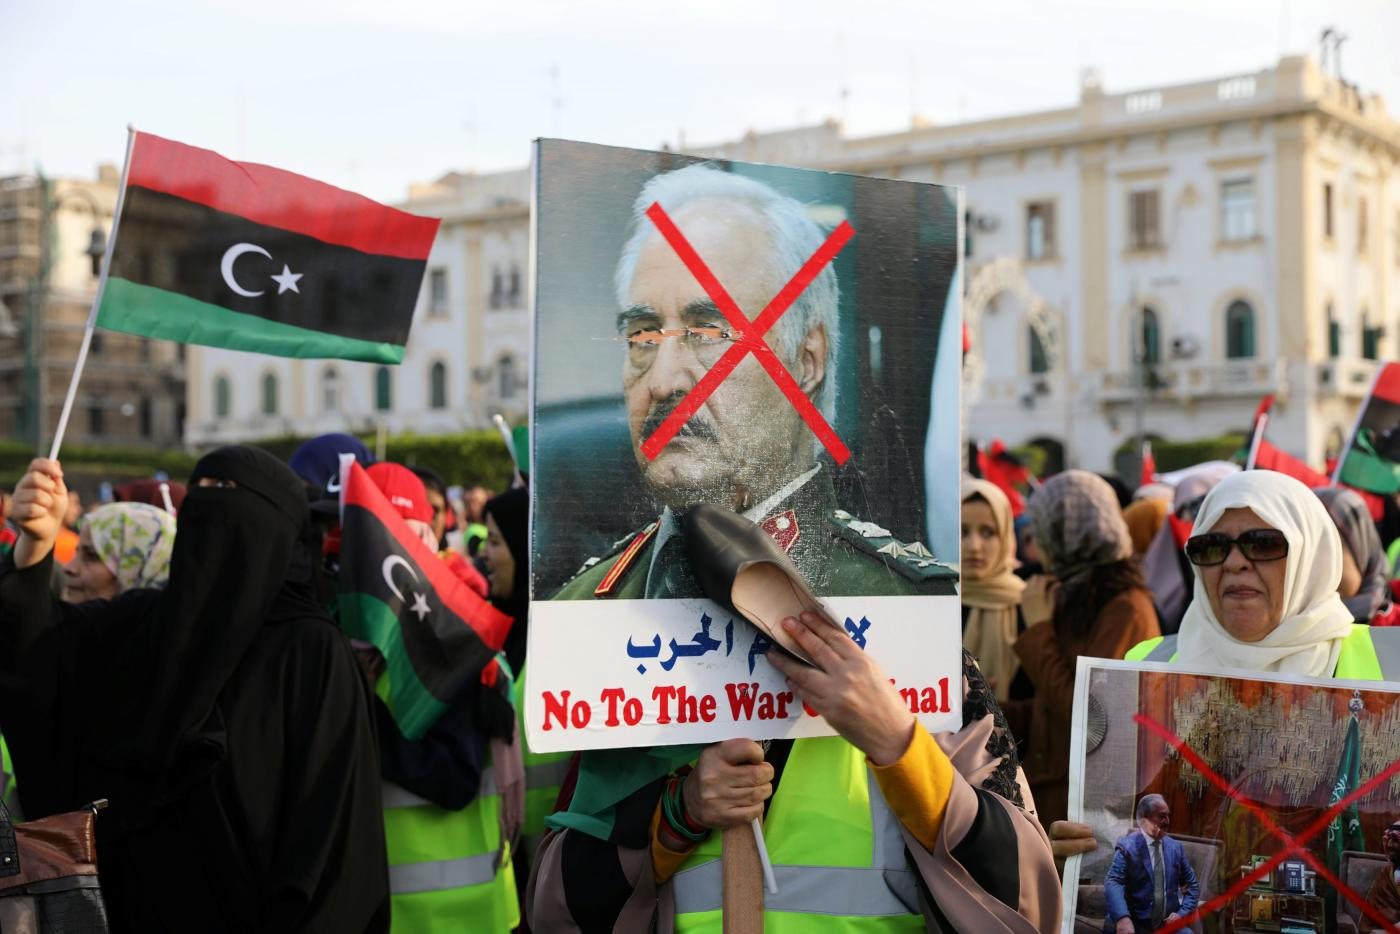 Libyans demand an end to Haftar's attack in a protest in Tripoli (Reuters)